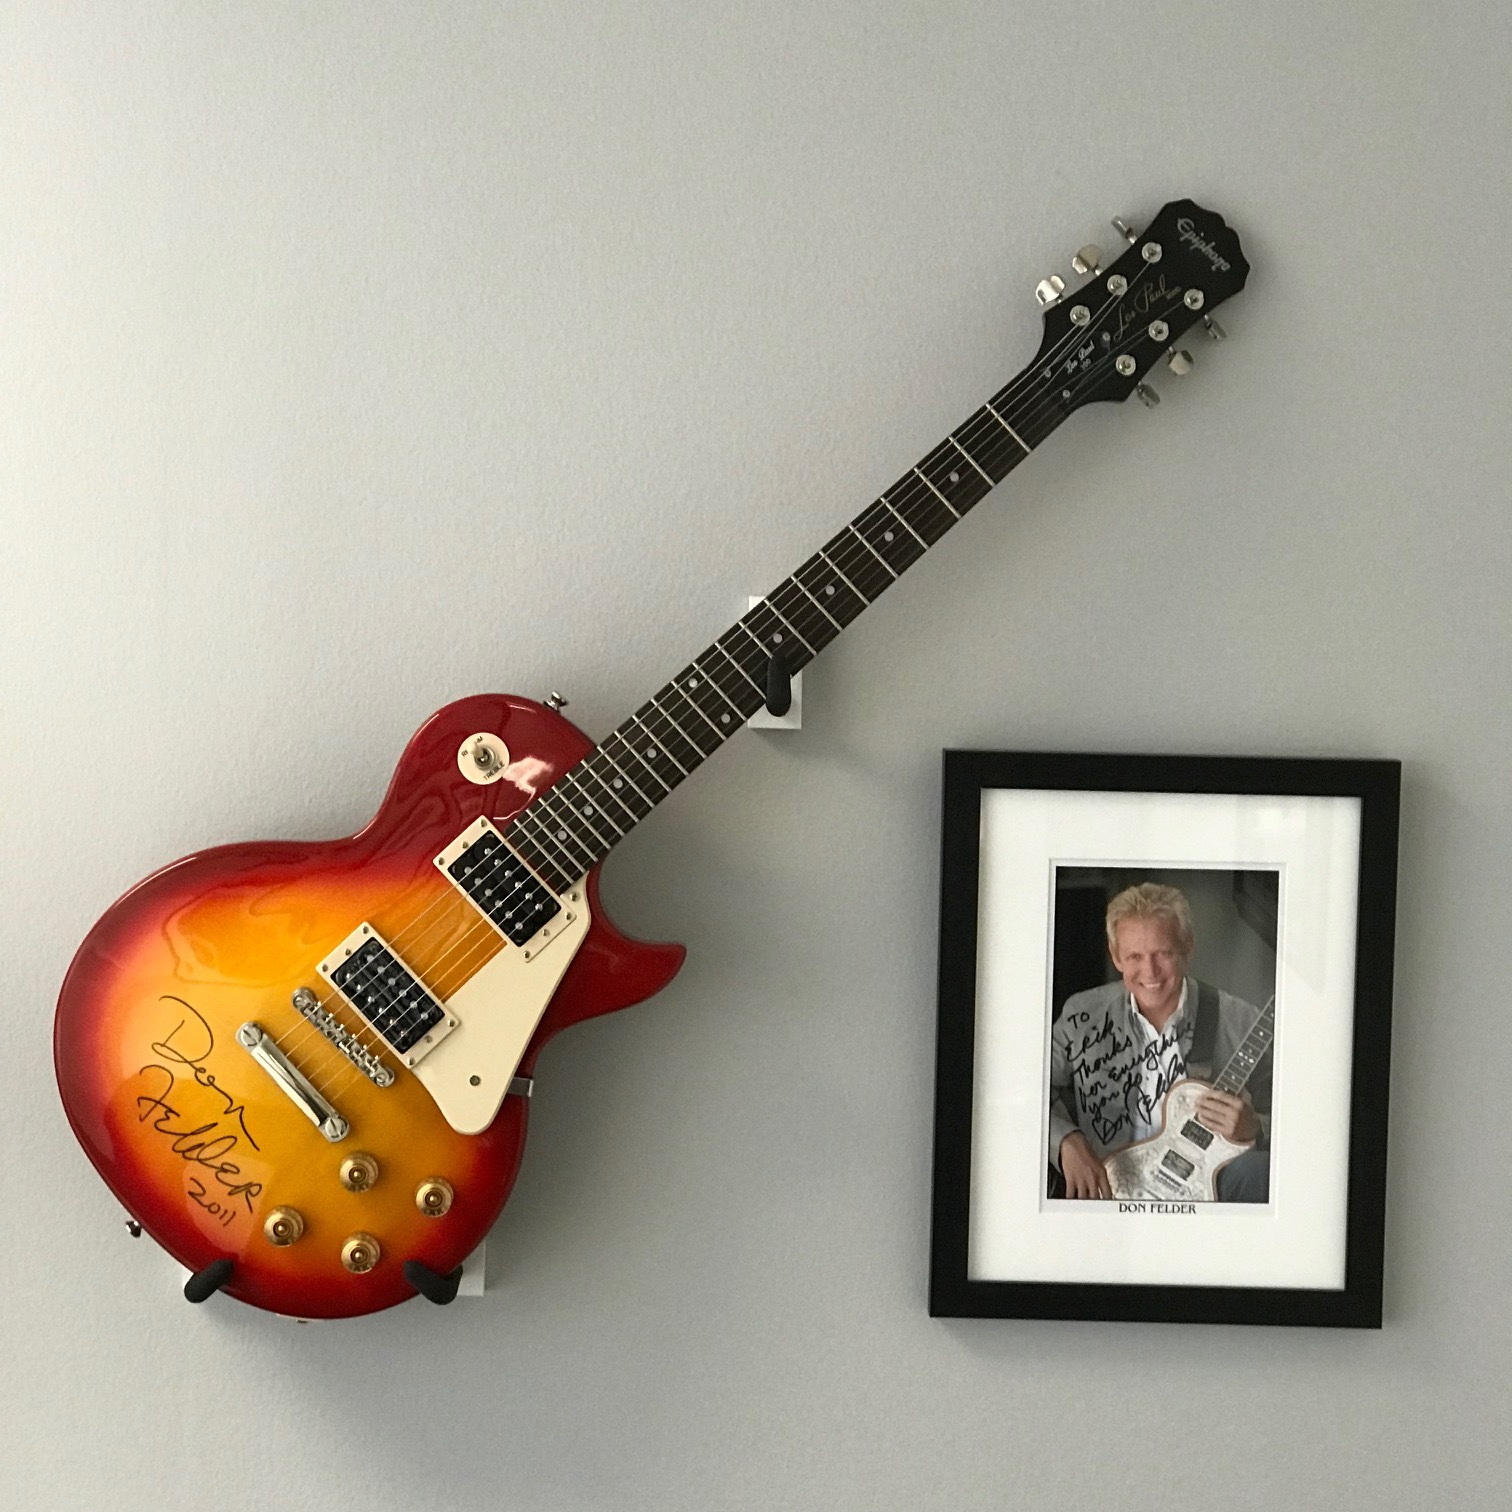 Don Felder Hotel California wall with guitar and signed pic.jpg